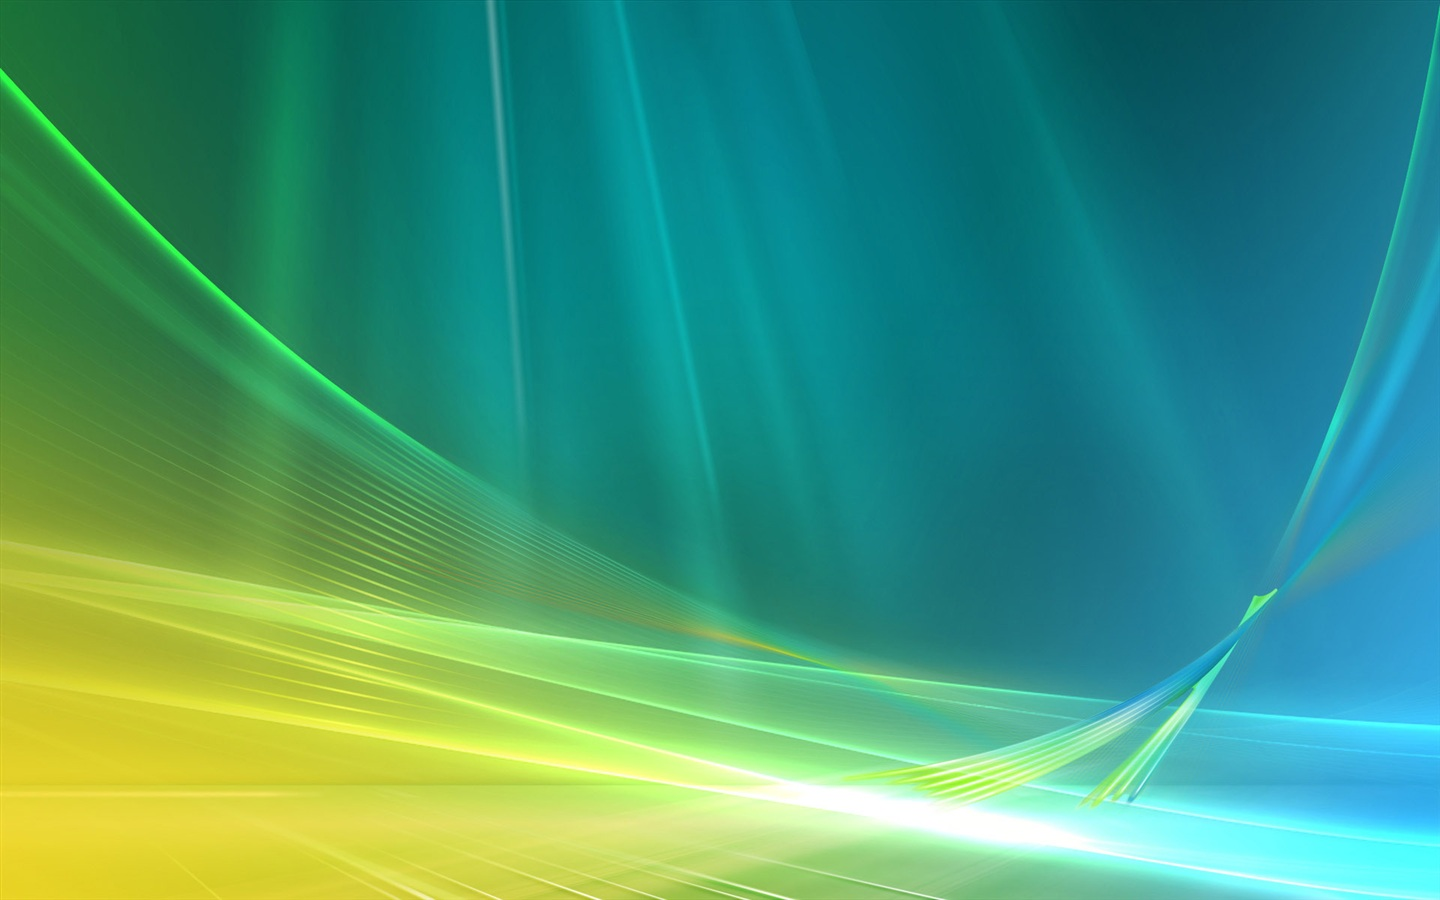 wallpaper blue and green abstract space curve 1920x1200 hd picture image